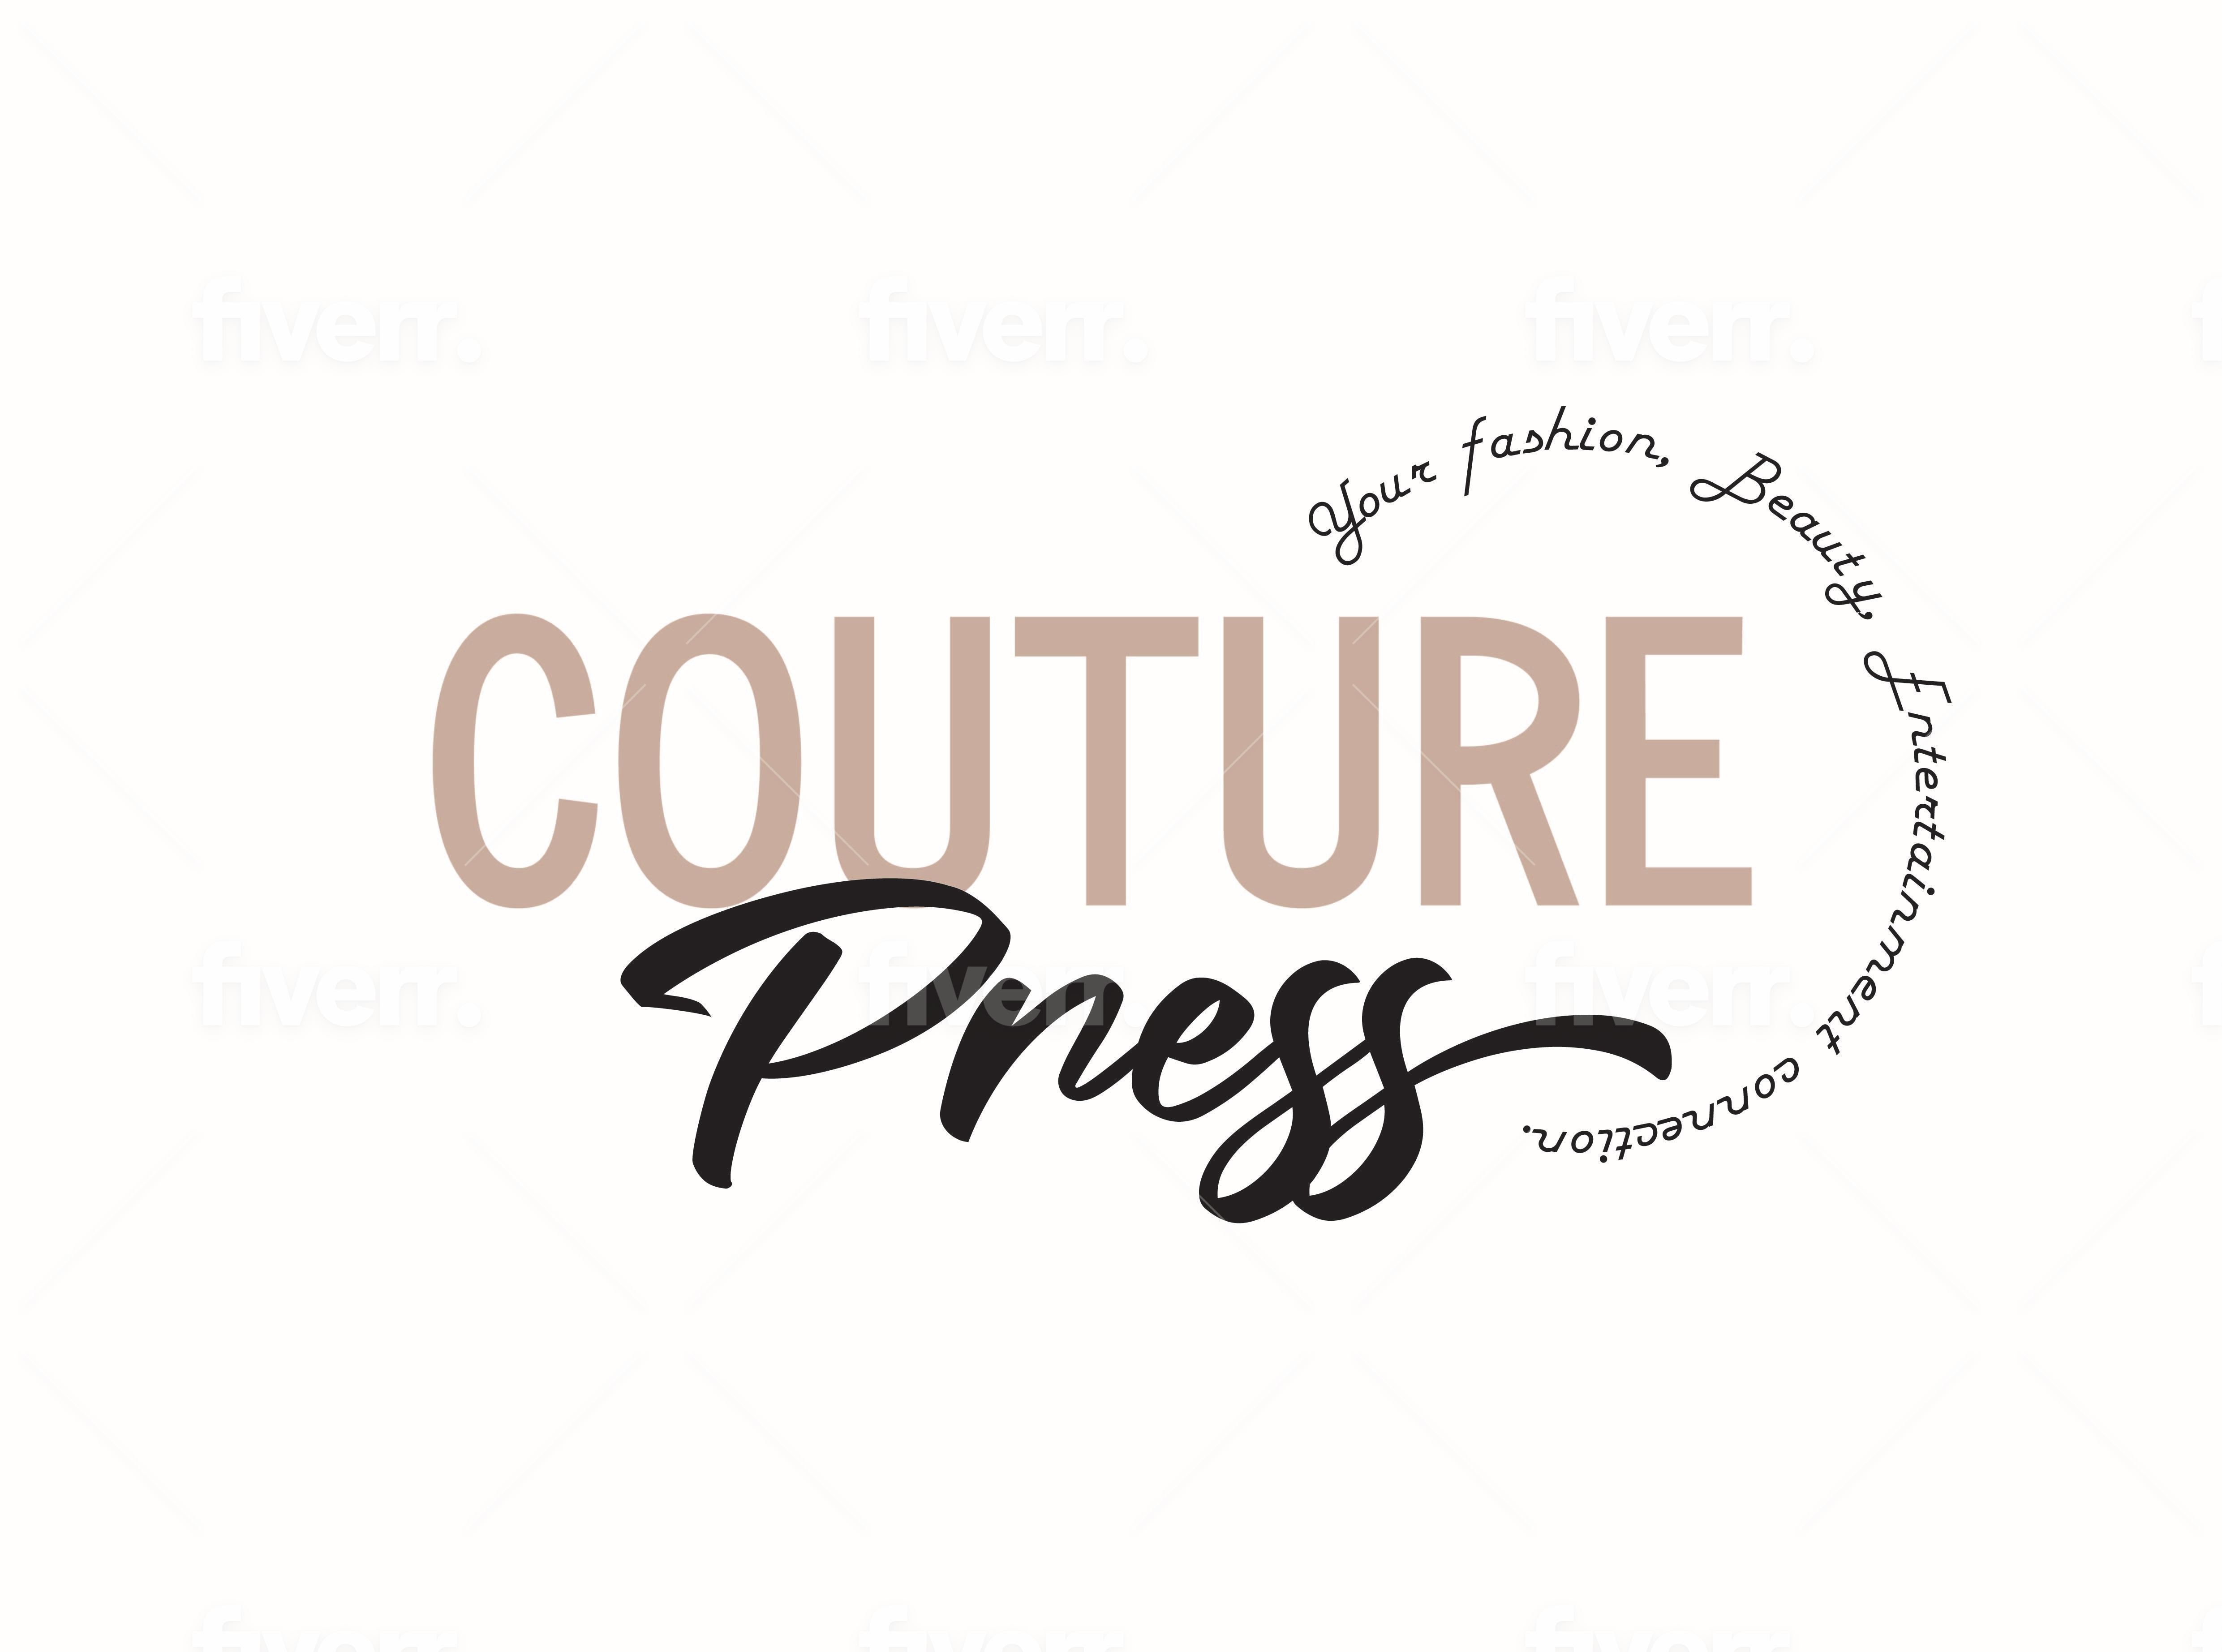 Couture Press introduces an International Directory for all fashion, beauty and entertainment enthusiasts